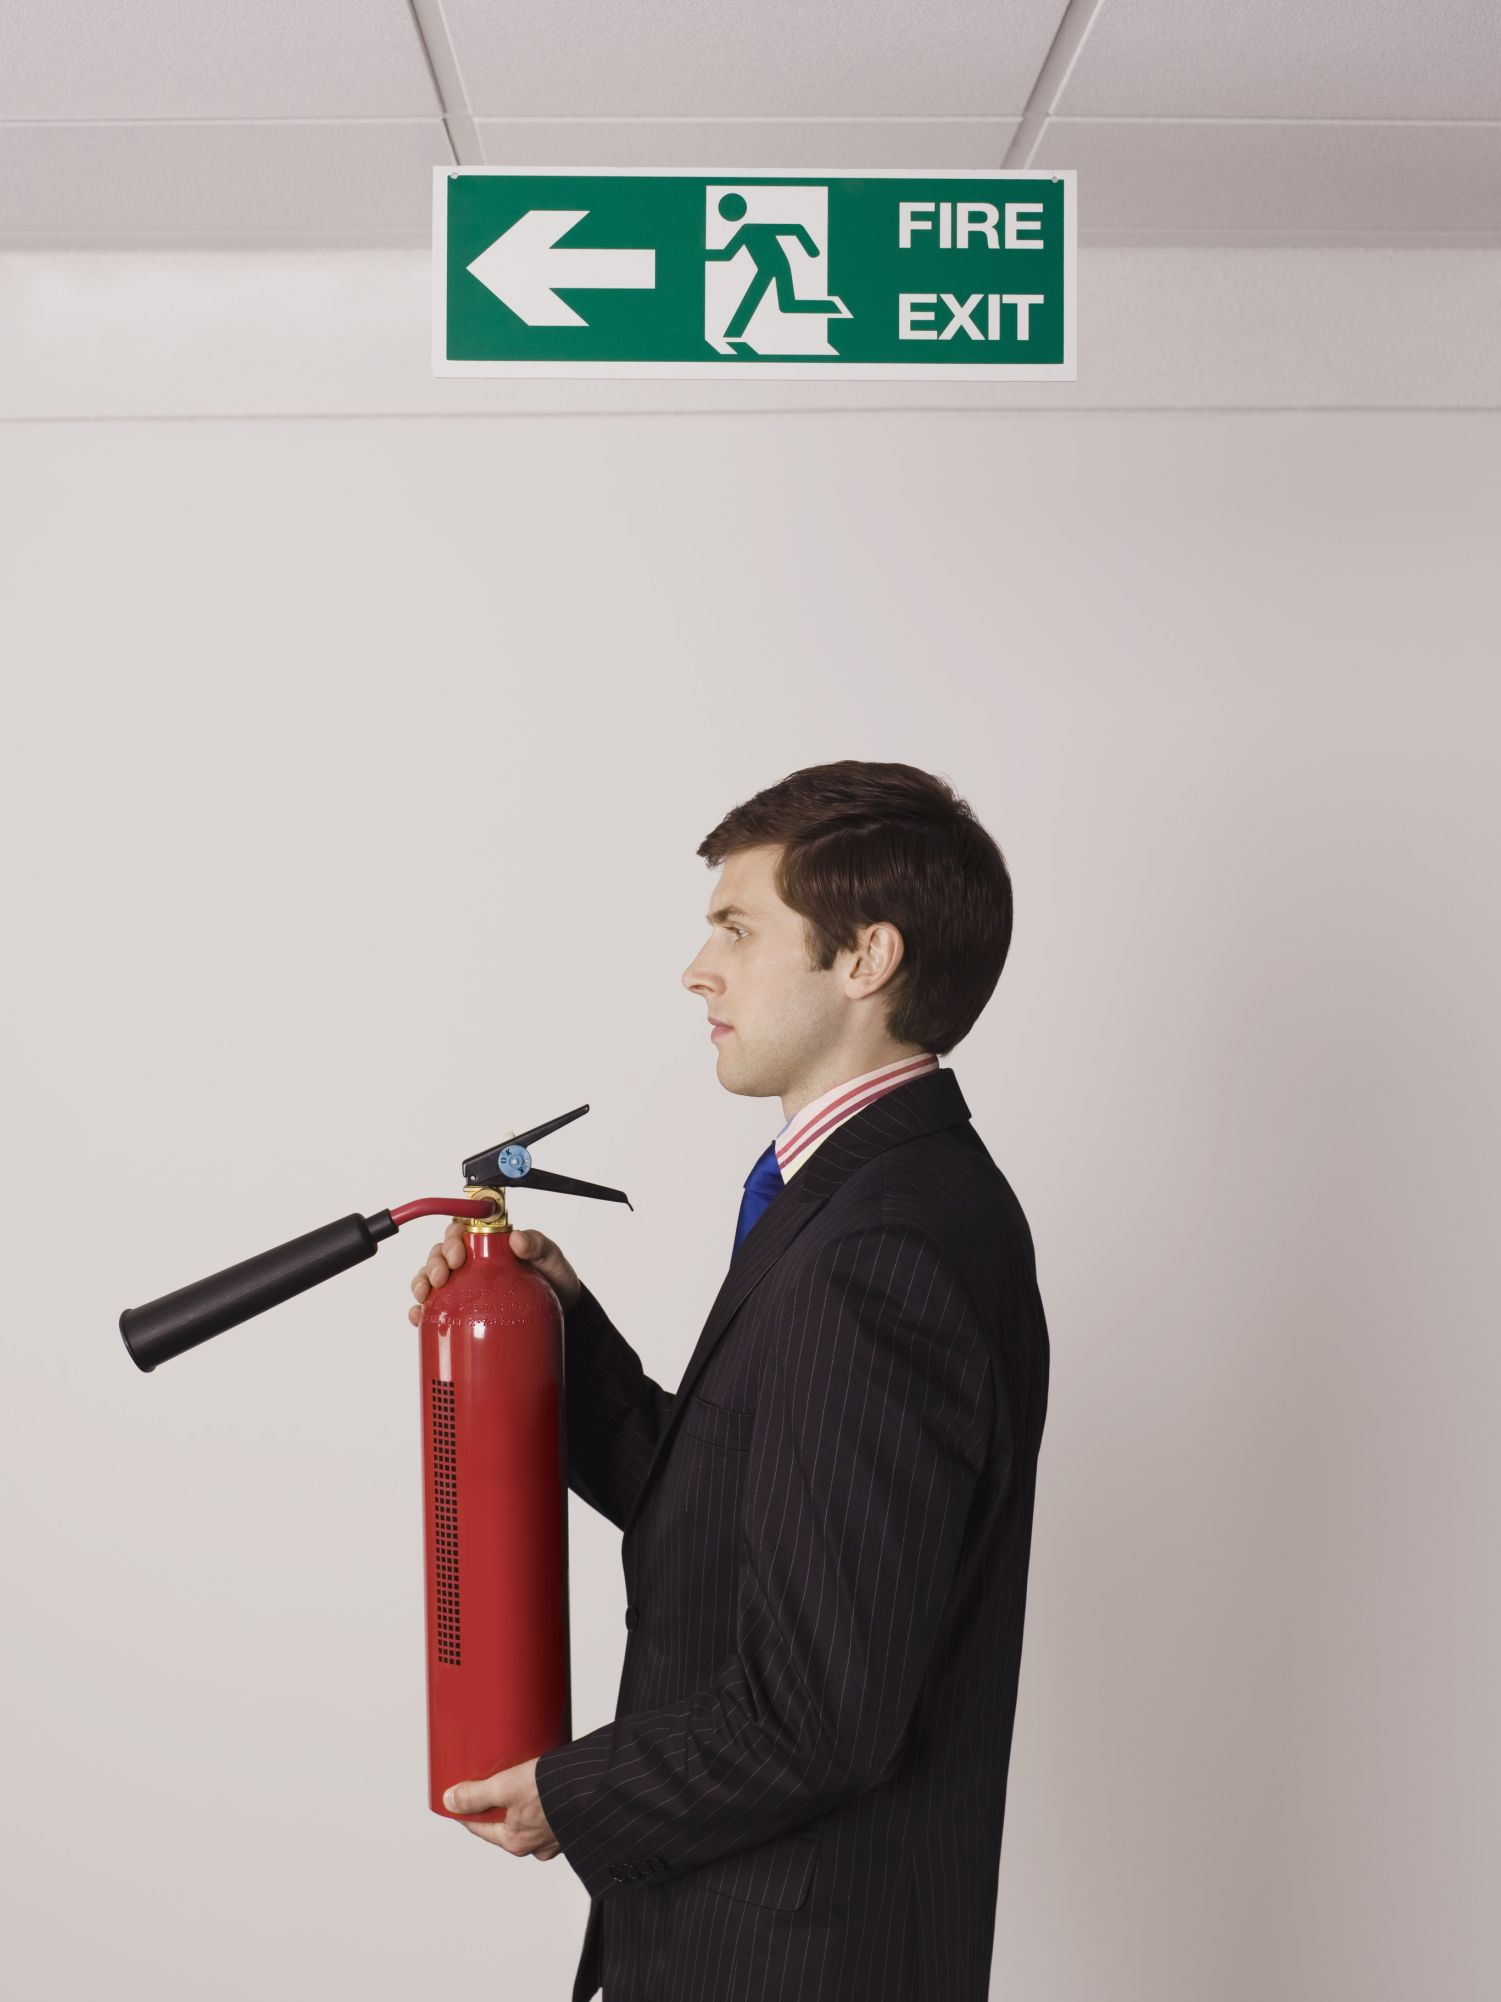 Fire Extinguishers 101 For Commercial Properties Fire Prevention Fire Safety Evacuation Plan